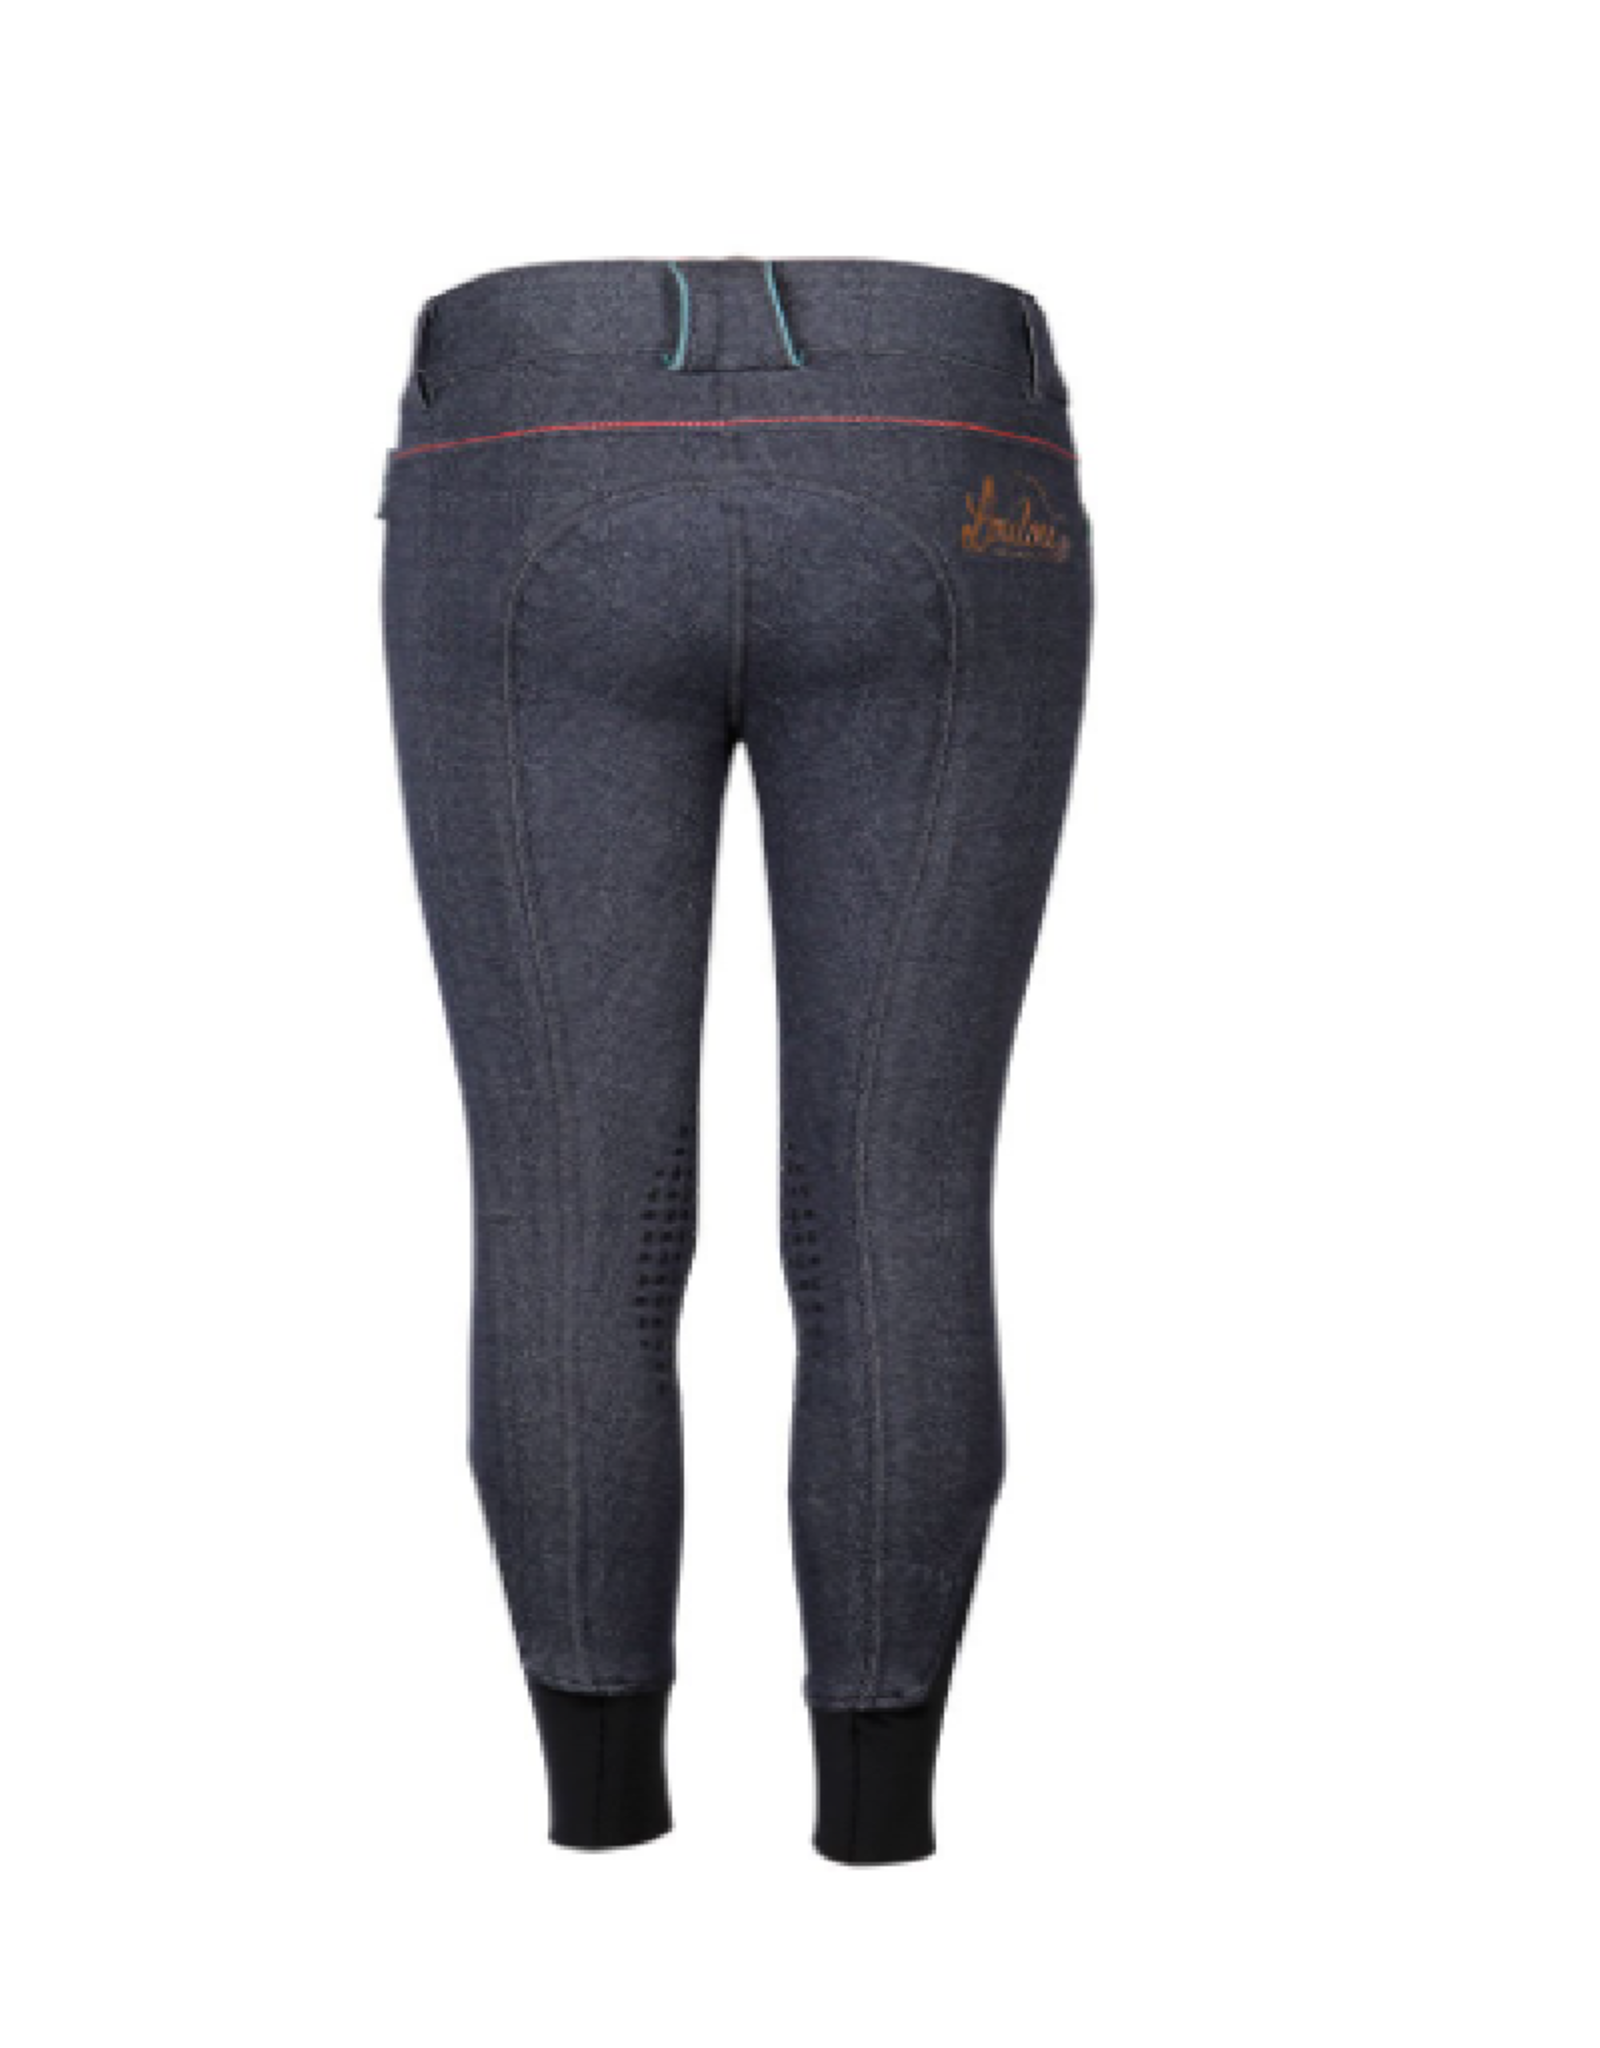 Harry's horse Harry's Horse Loulou Tokoza Full Grip Kind Broek